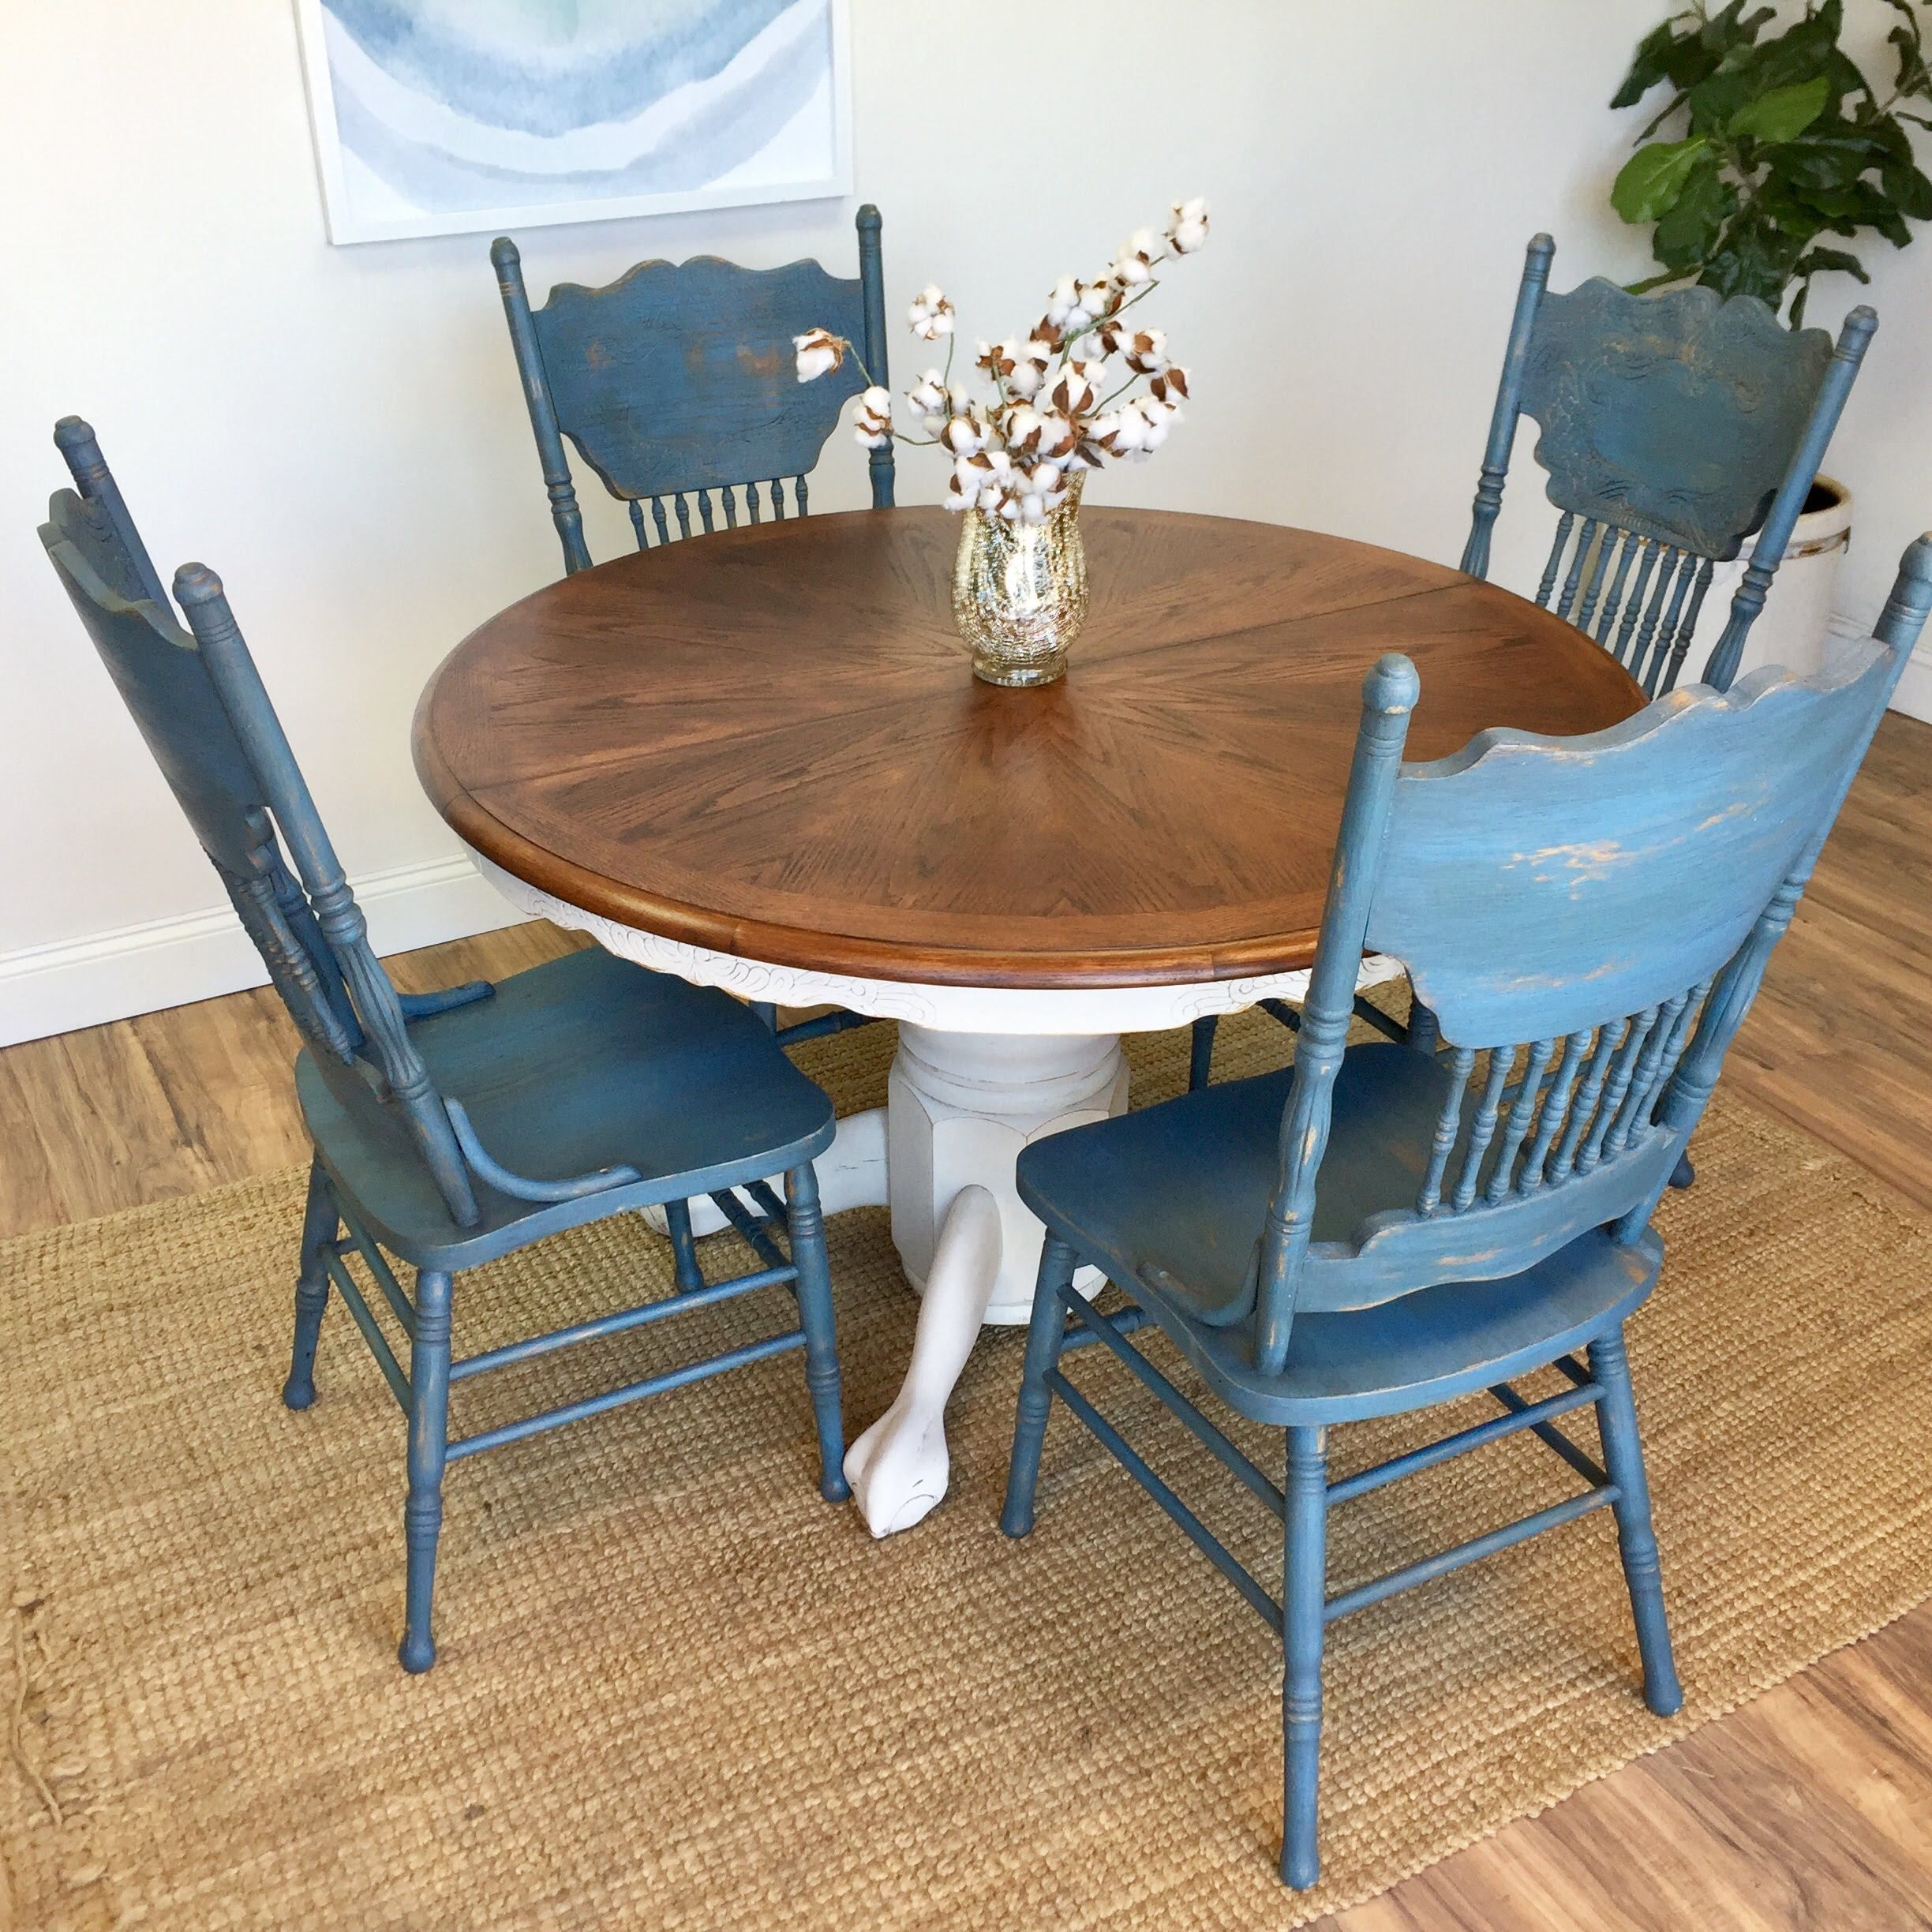 Vintage Decor And Distressed Furniture In Sparta Township, NJ